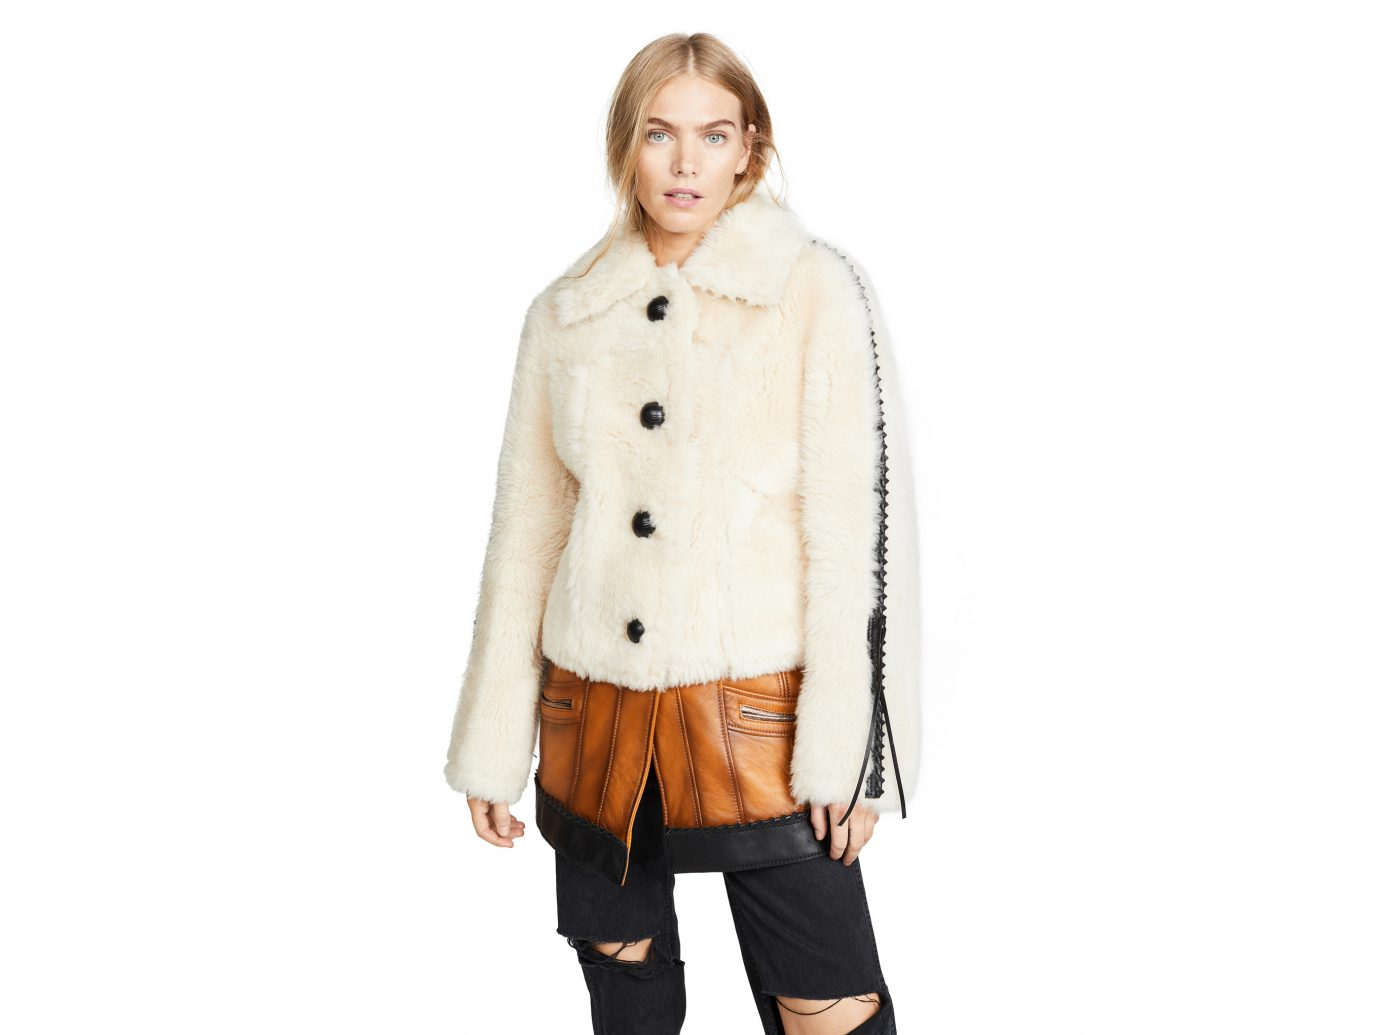 Coach 1941 Shearling Leather Coat